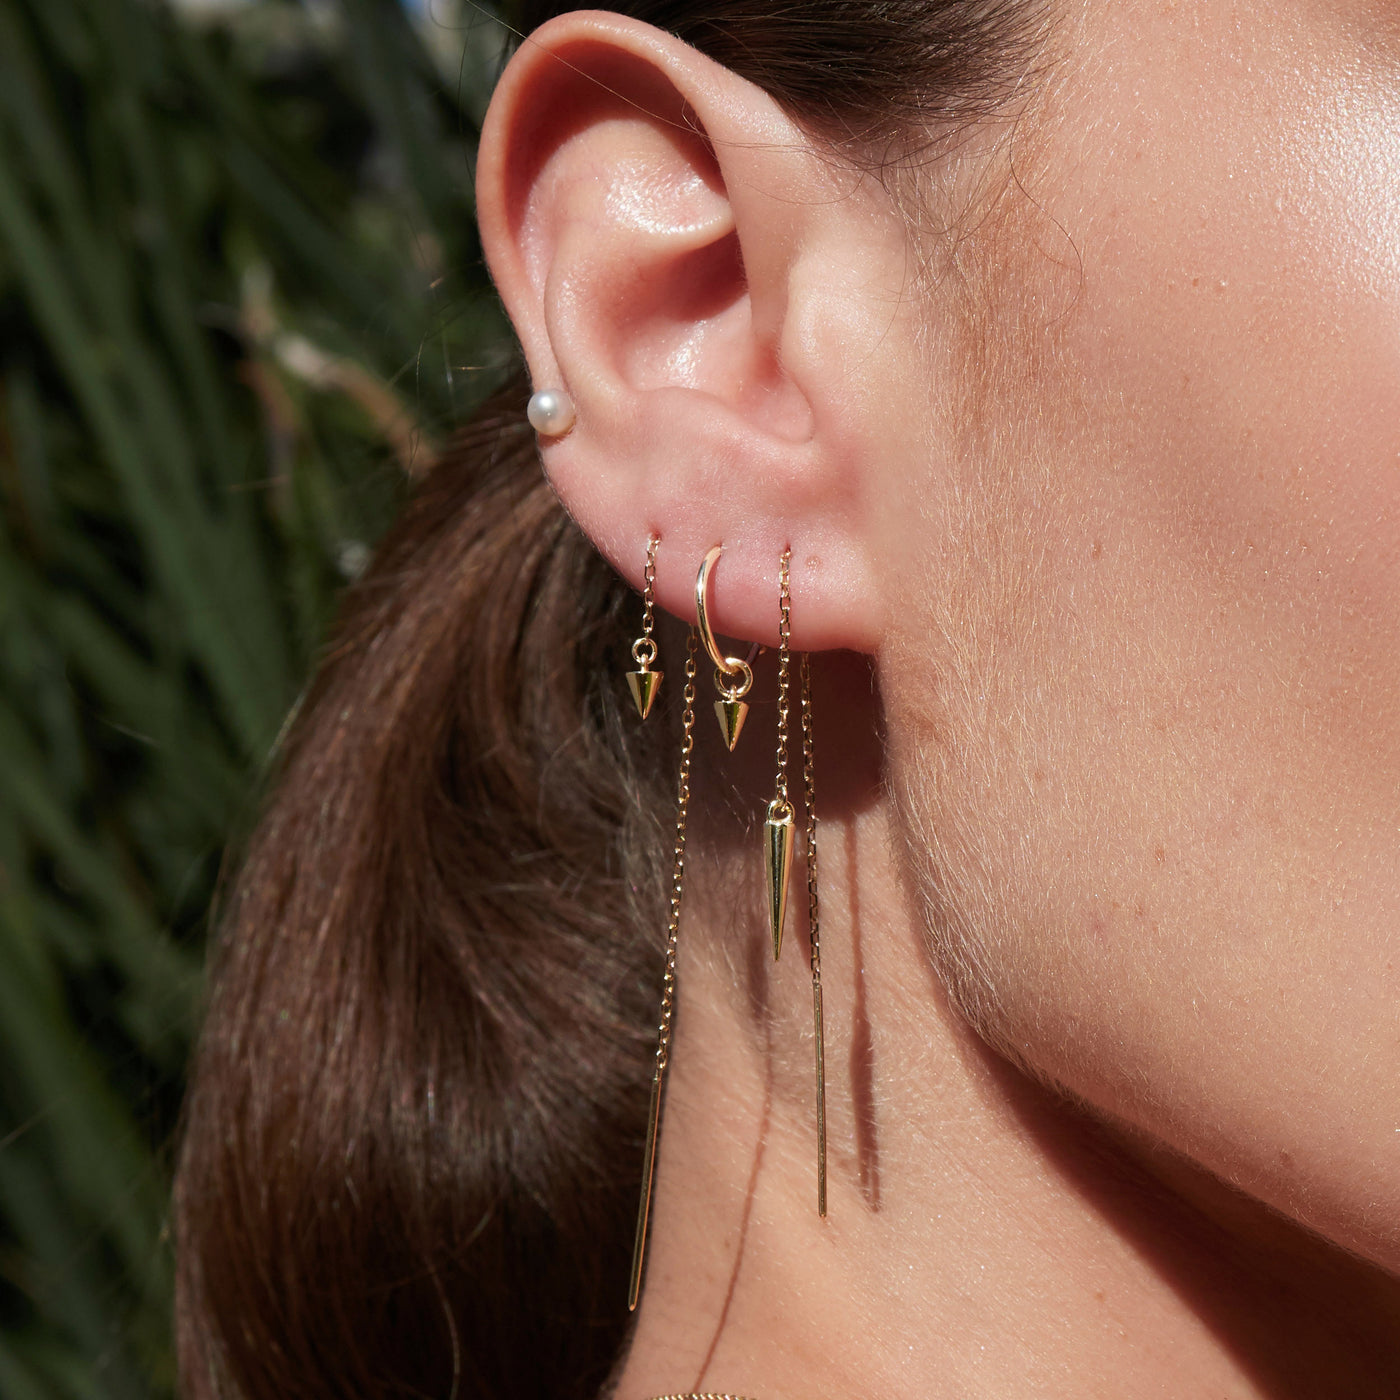 Baby Spike Sleeper Earrings